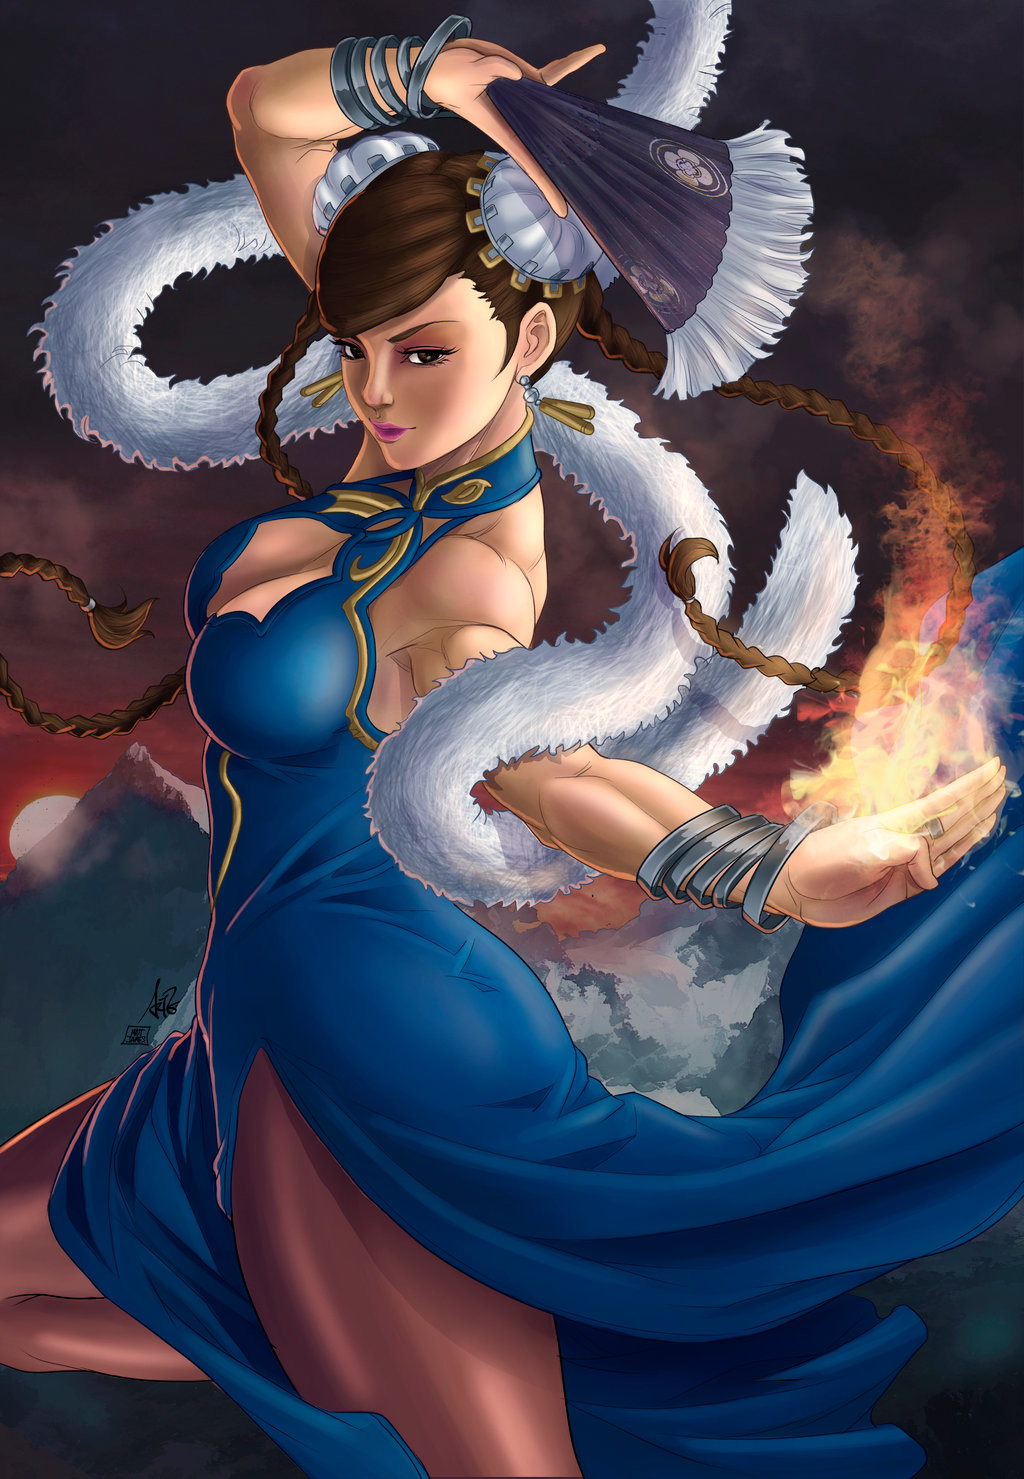 Matt james chun li galmour by snakebitartstudio dazu4ce